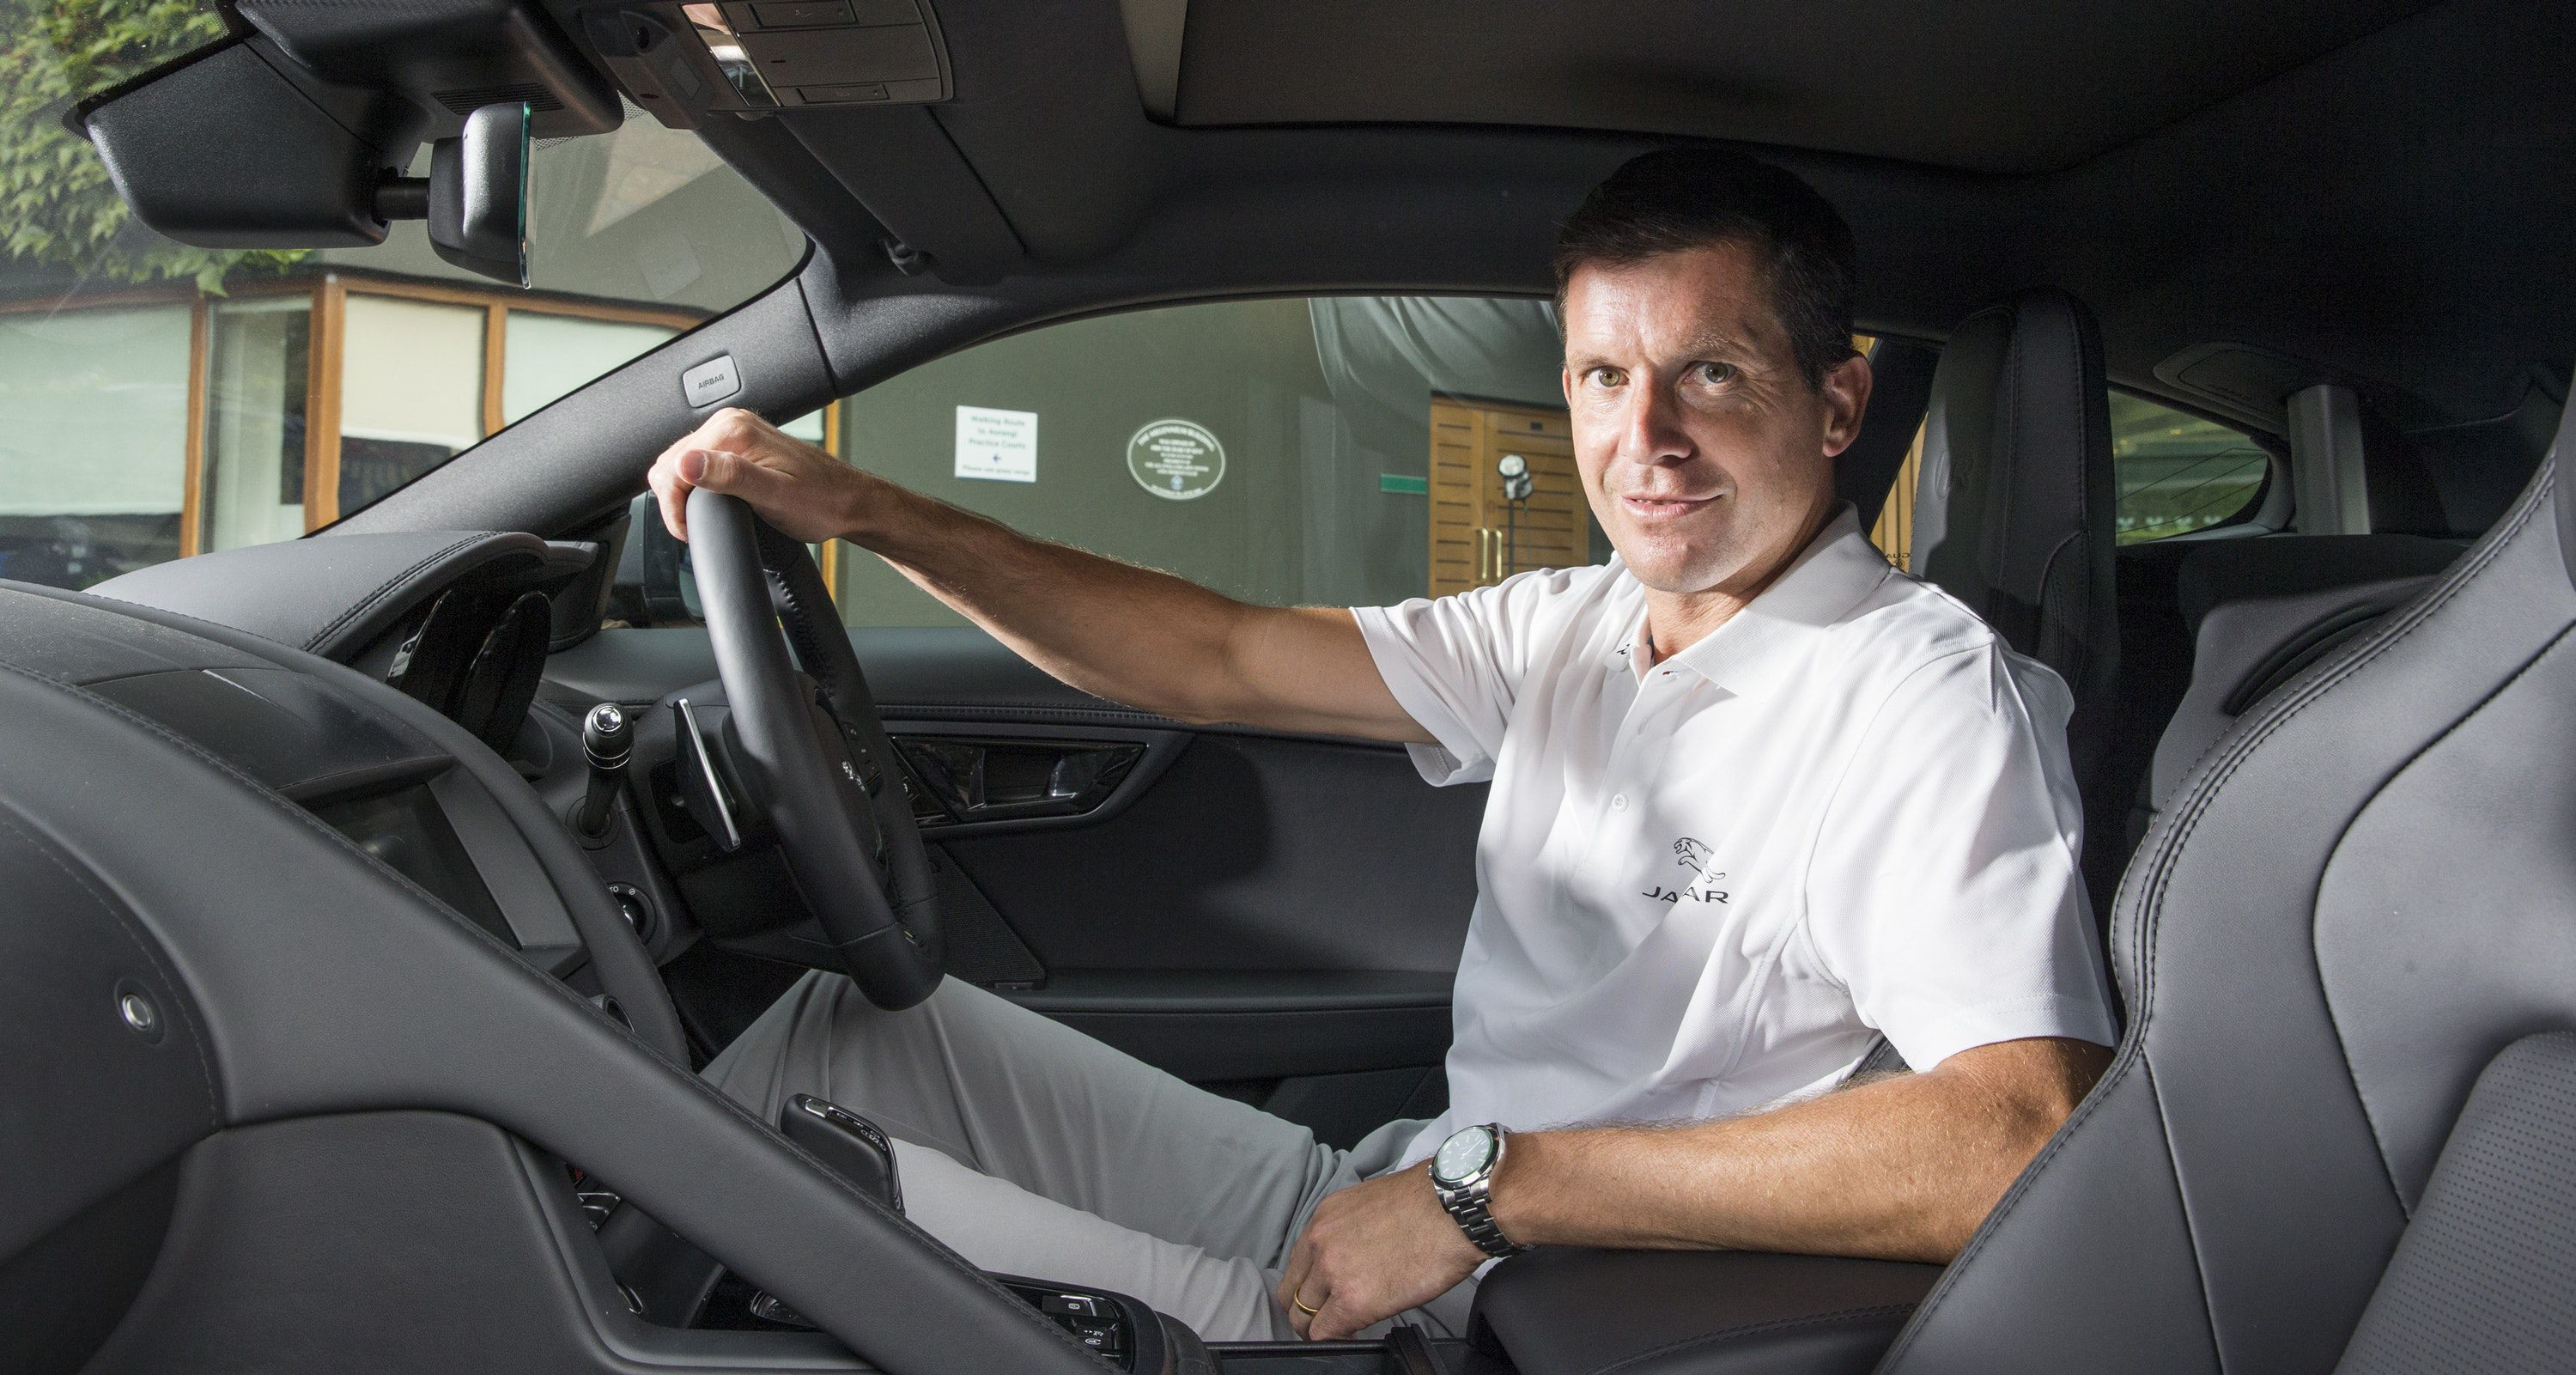 Tim Henman behind the wheel of a car